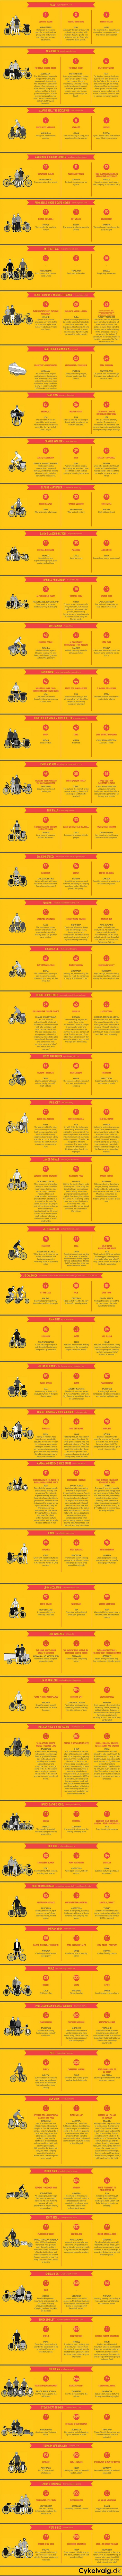 List of the 159 best bicycle touring destinations in the world